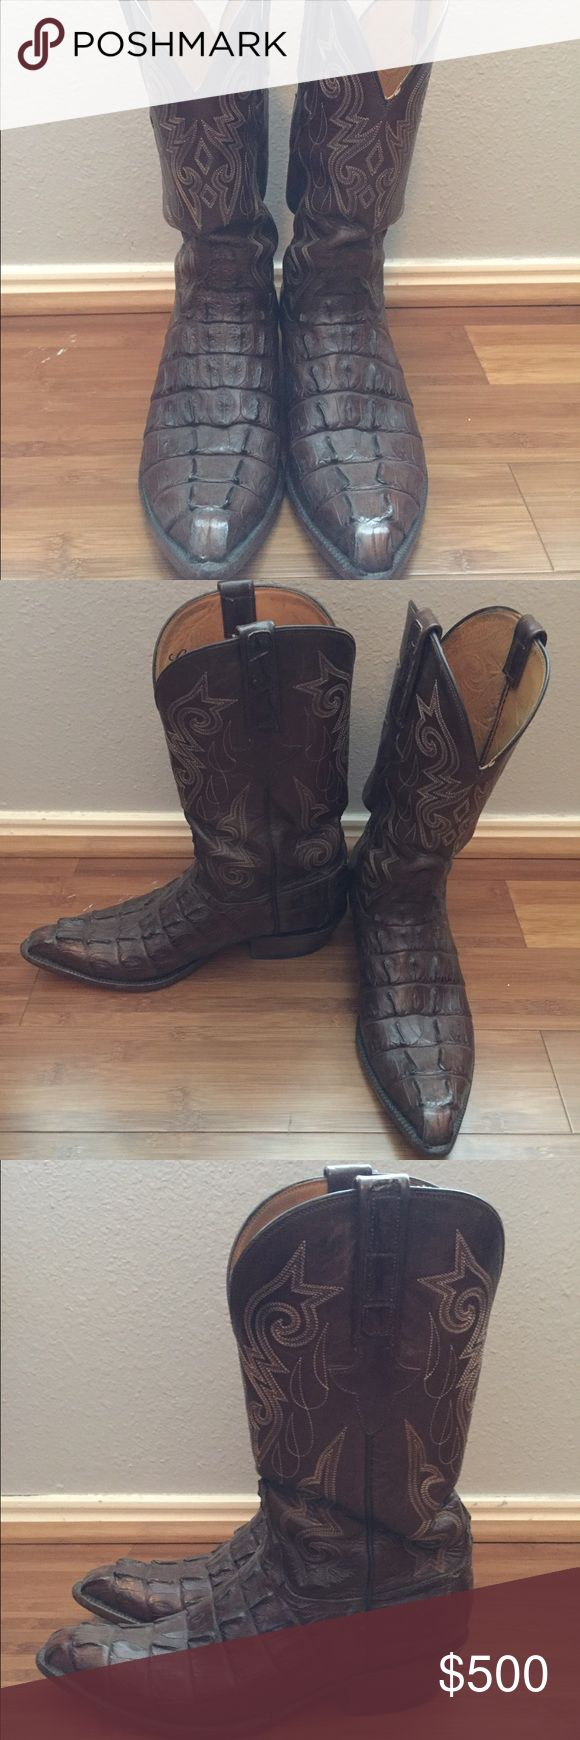 Lucchese West Nile Alligator Boots Size 8.5 B Used but still has much use left. Men's Luxury boot brand with top tier Alligator skin. Unique design. Handmade. Lucchese Shoes Cowboy & Western Boots